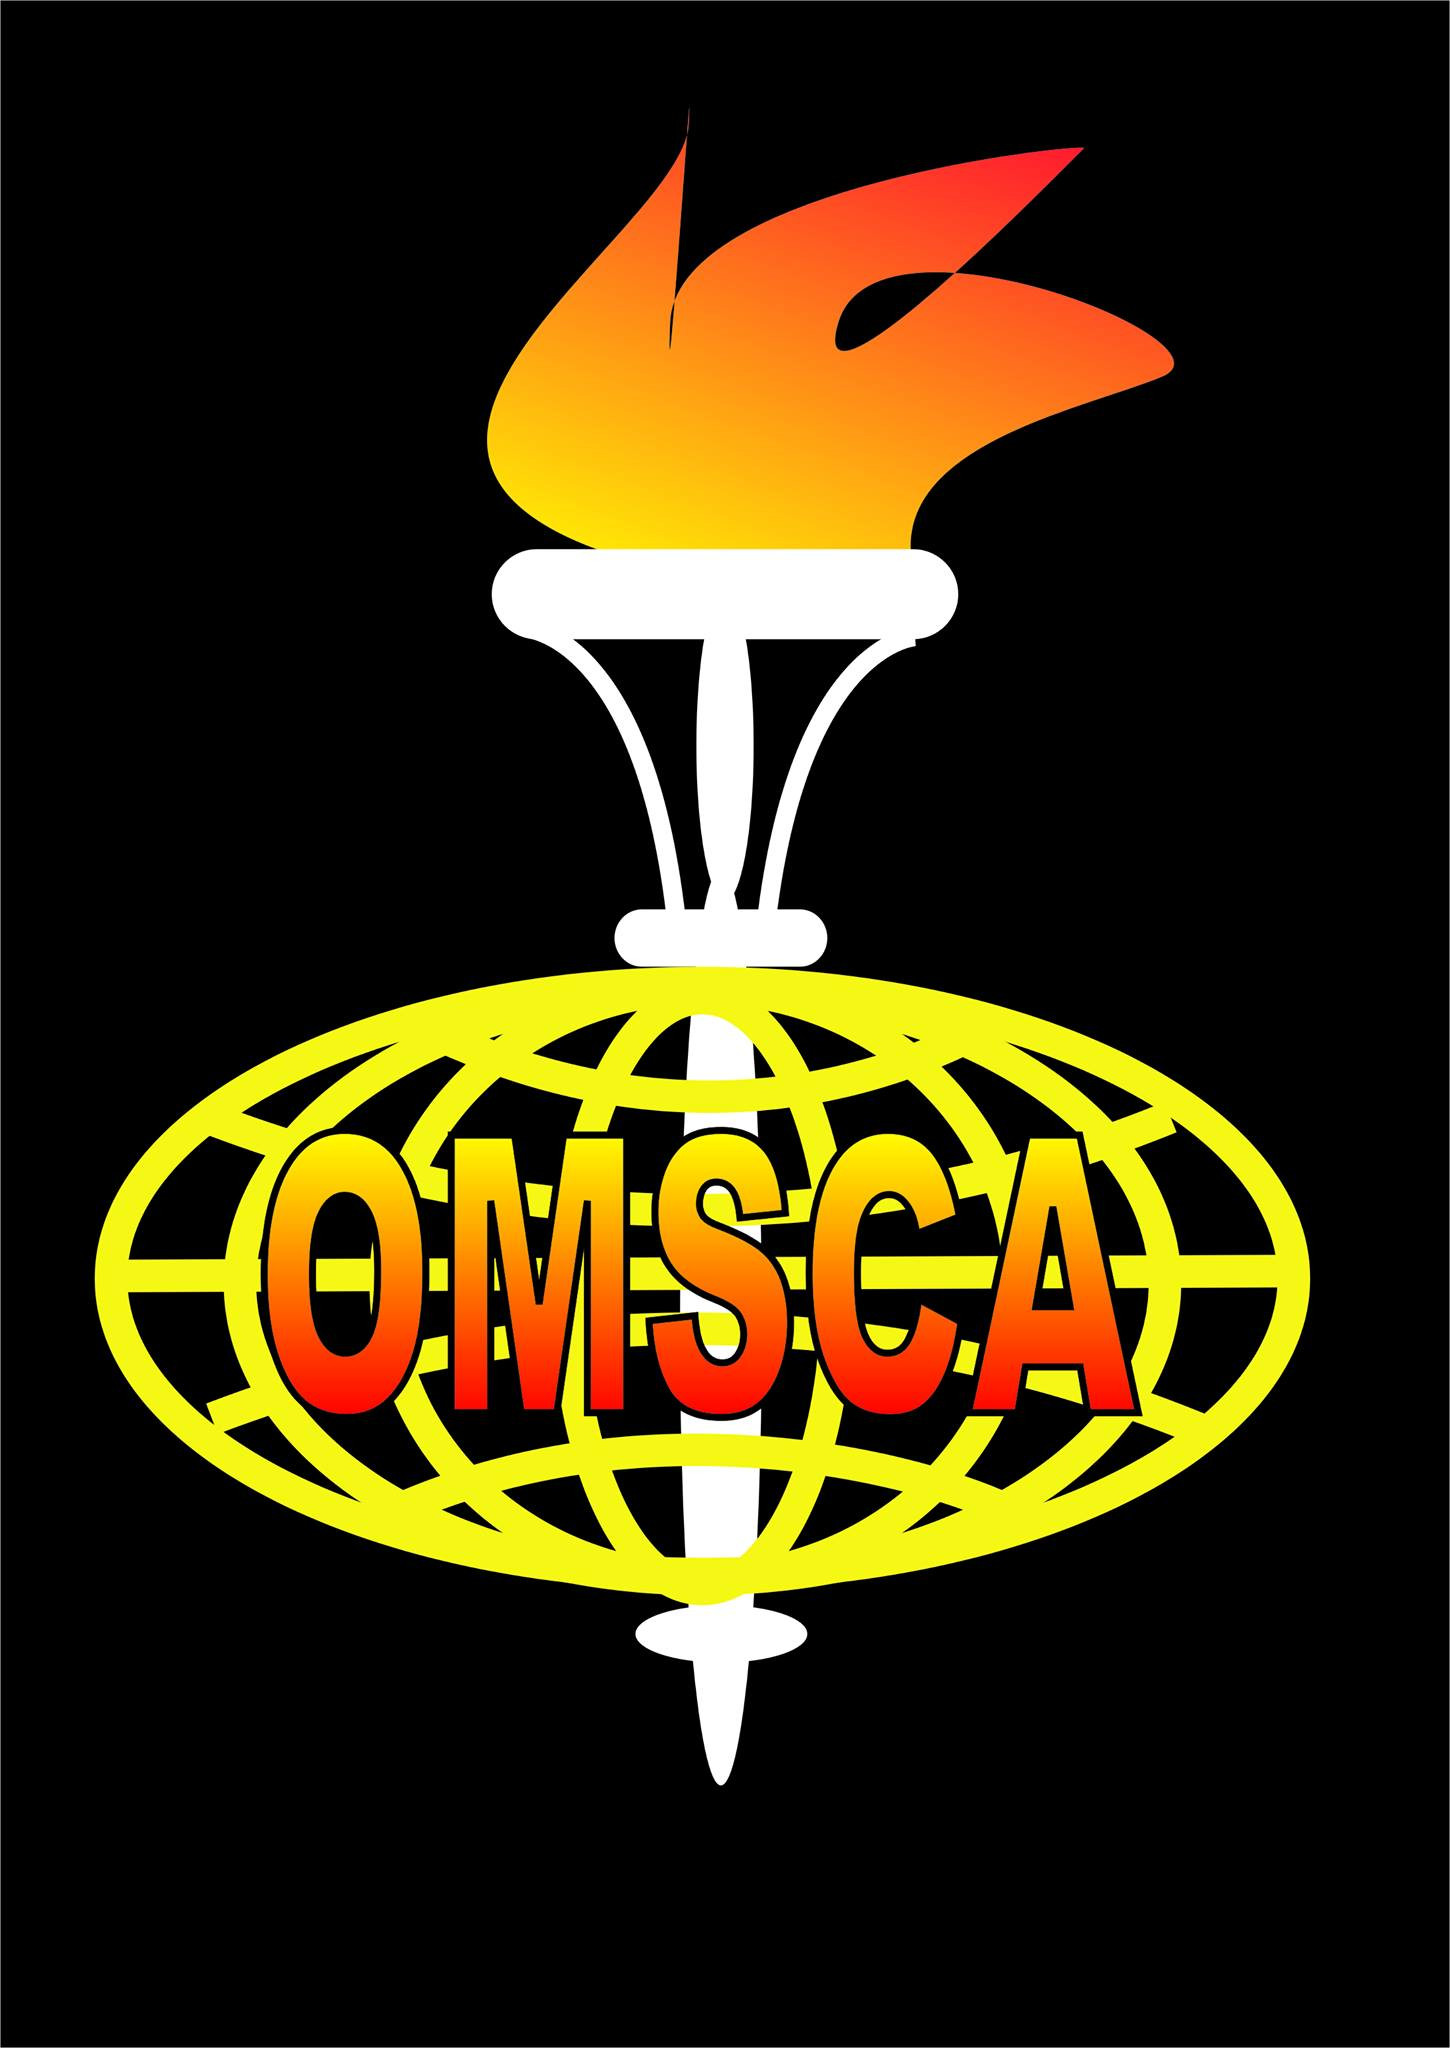 OMSCA-1